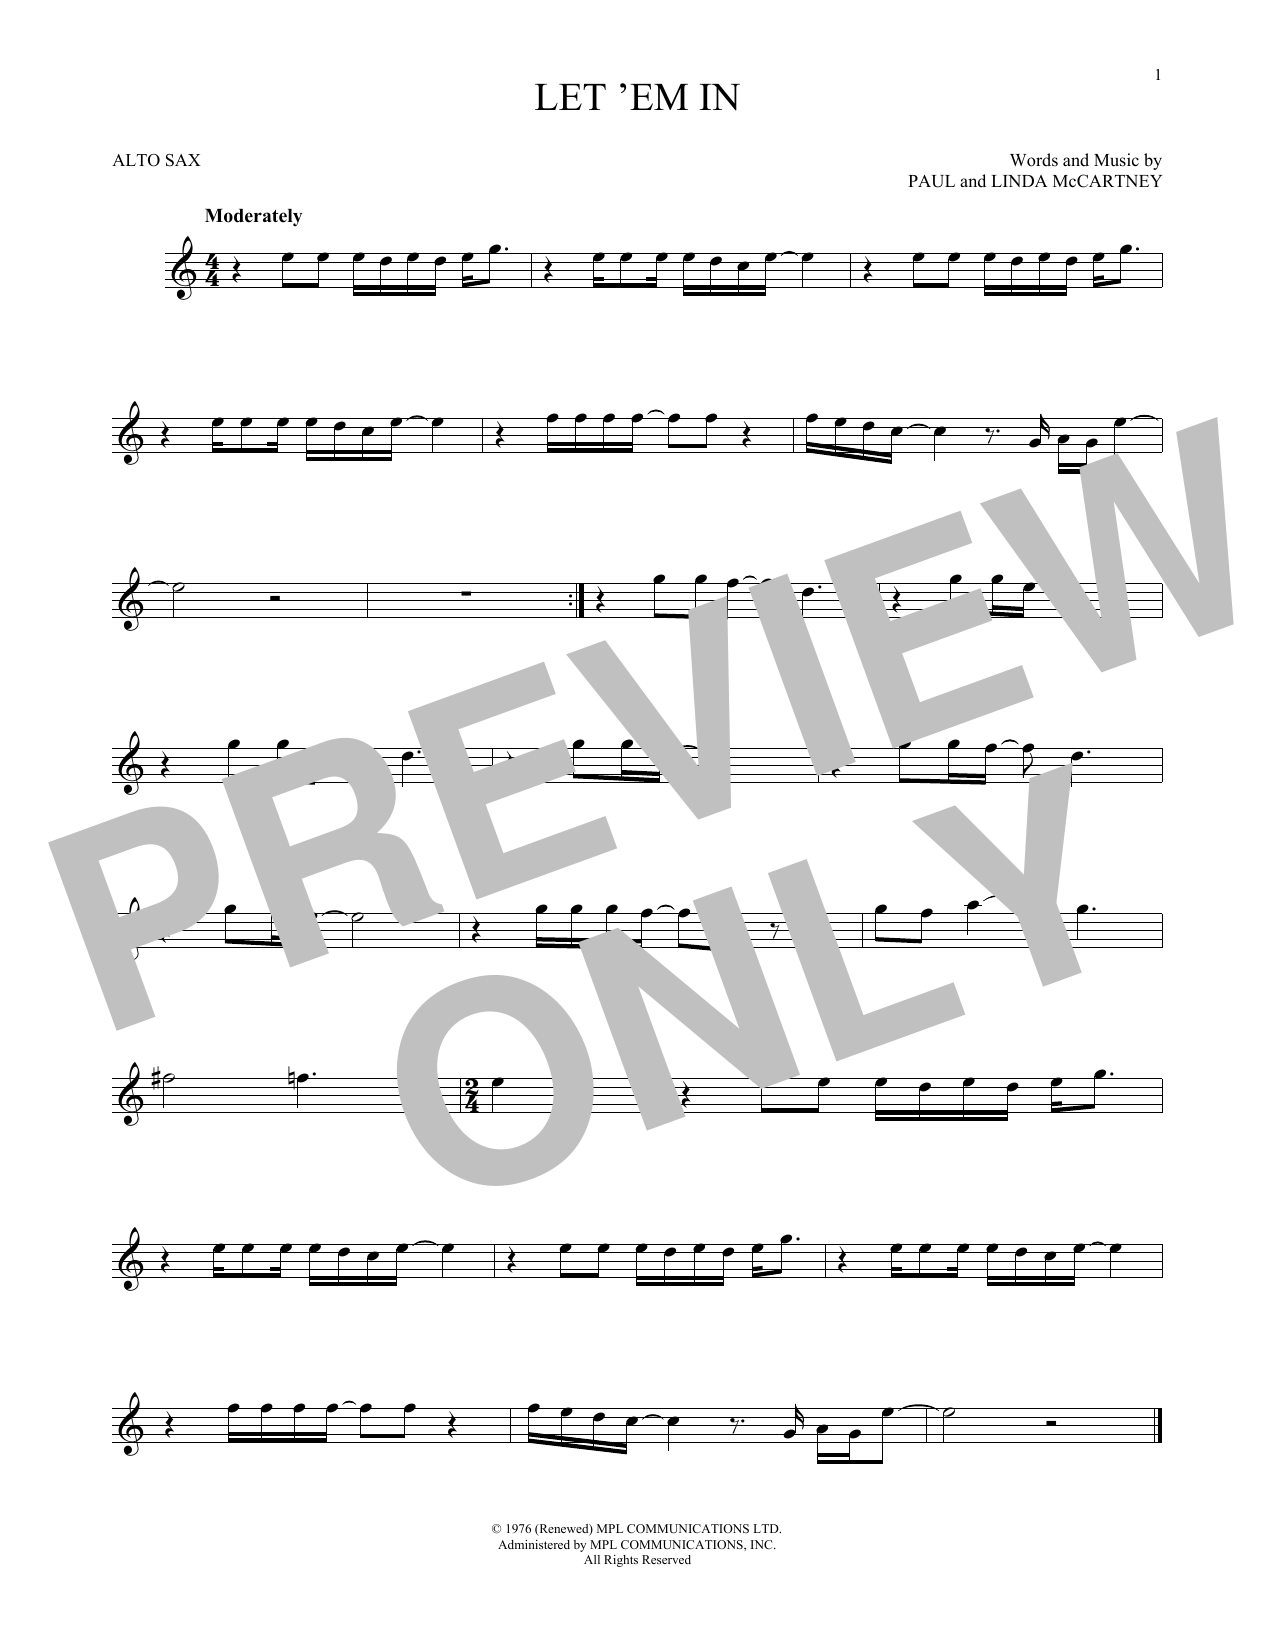 Wings Let 'Em In sheet music notes and chords. Download Printable PDF.